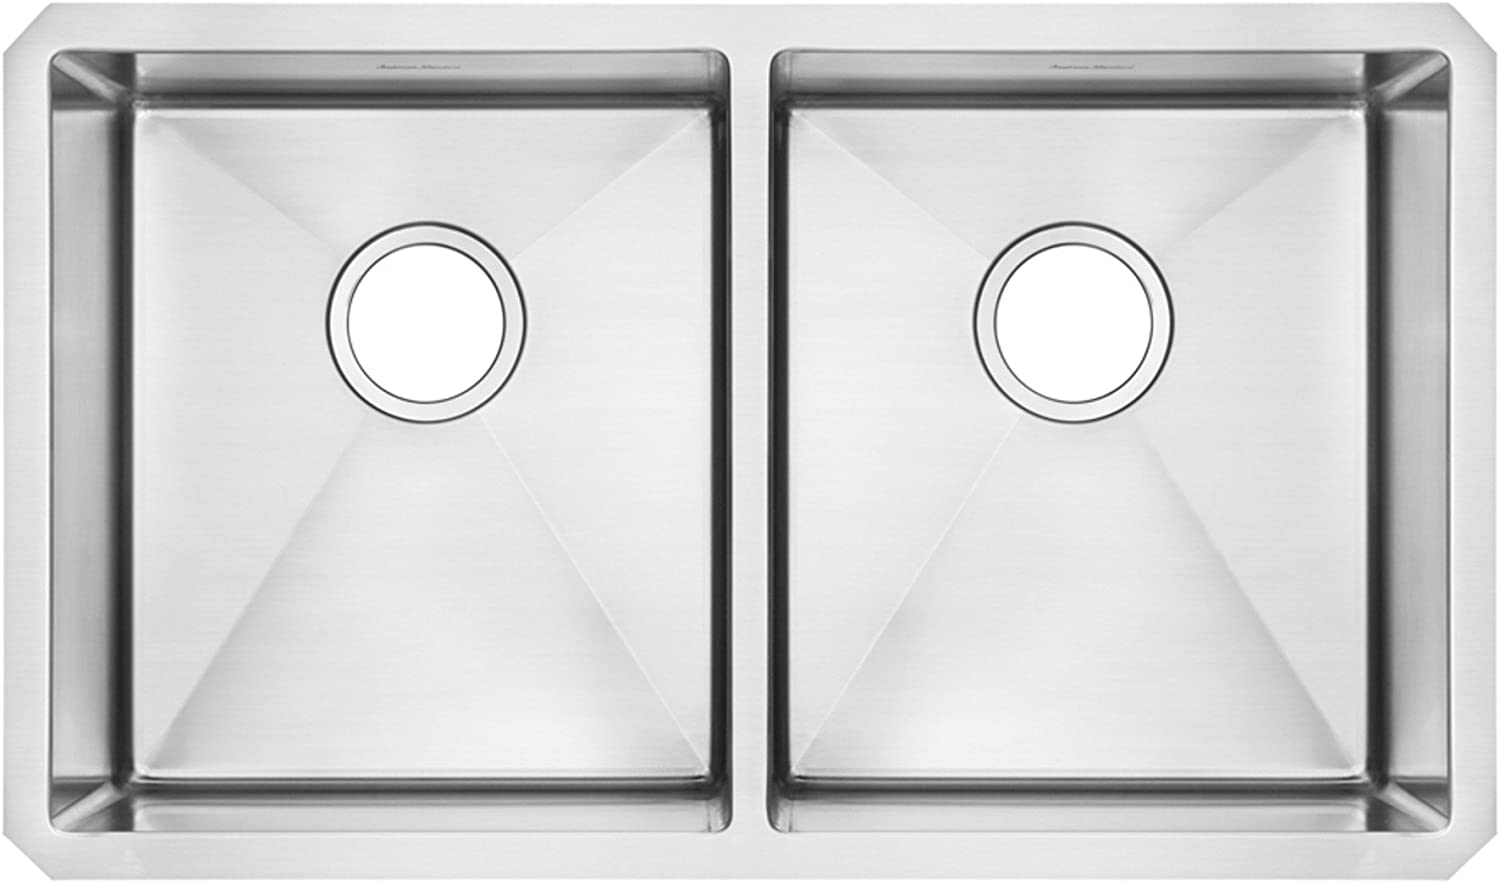 American Directly managed store Excellent Standard 18DB.9291800.075 Pekoe 29x18 Double Undermount